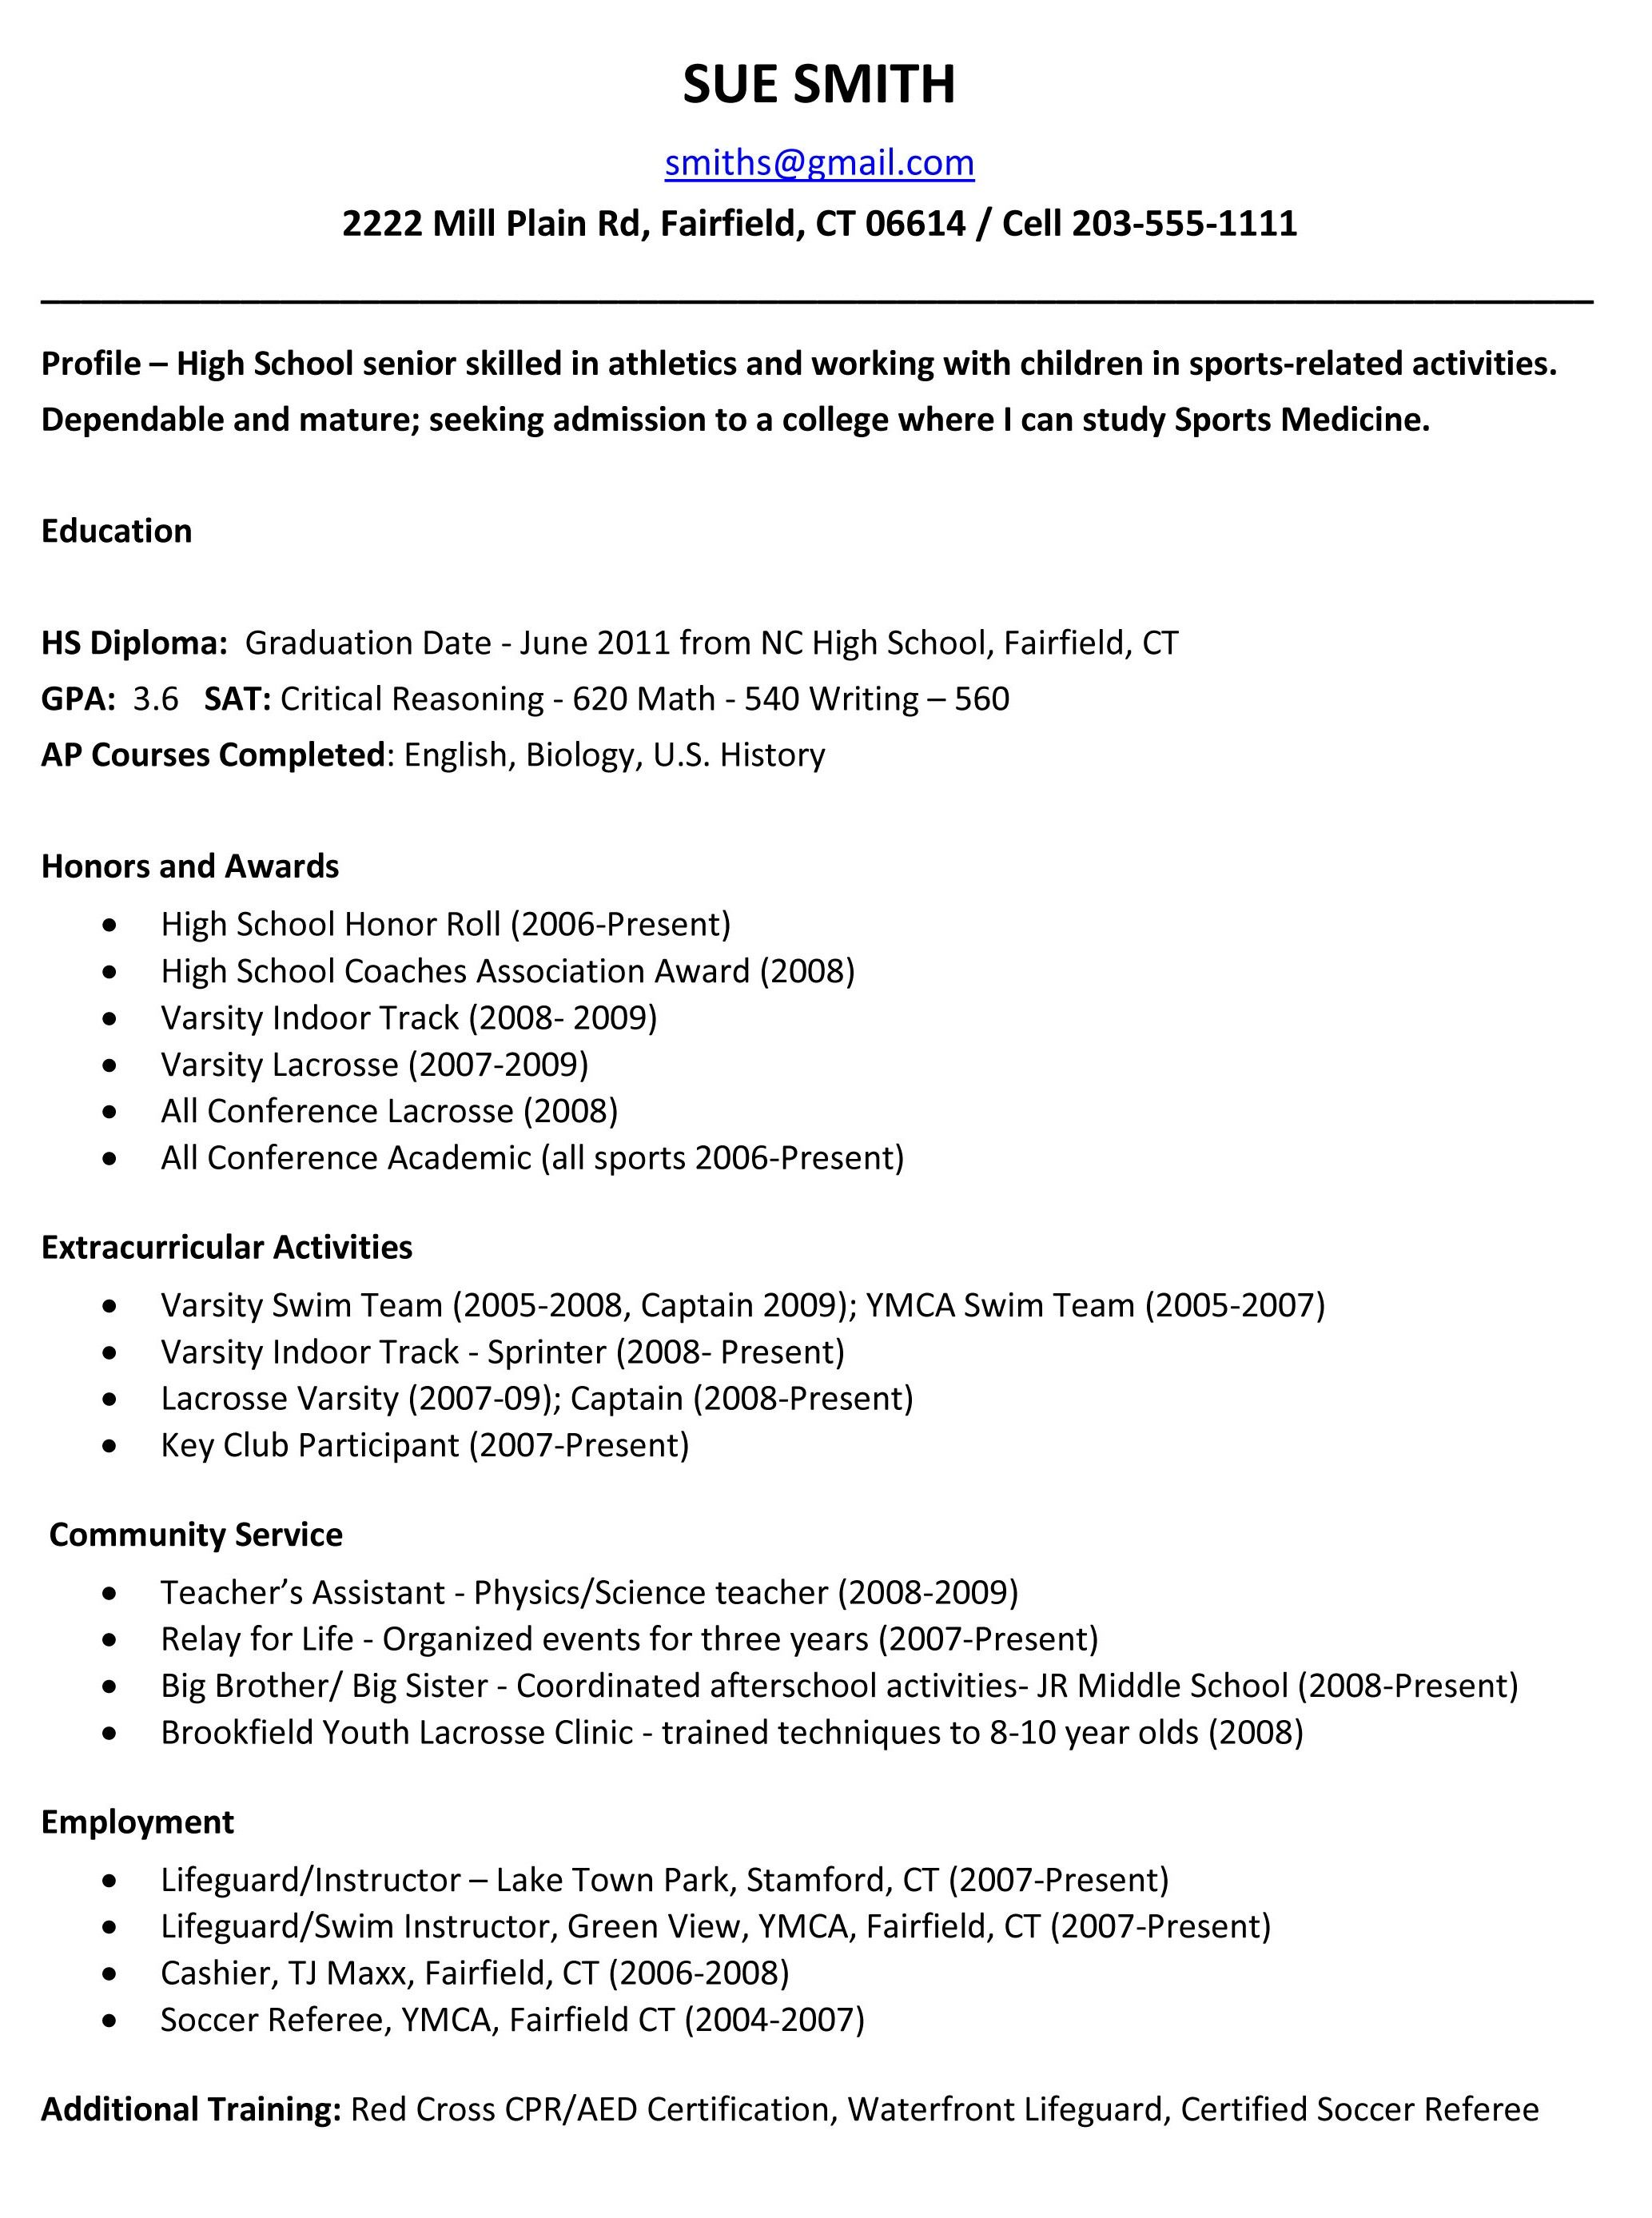 Example Resume For High School Students For College Applications  Example Resume For High School Students For College Applications School  Resume Templateregularmidwesternerscom  Regularmidwesterners